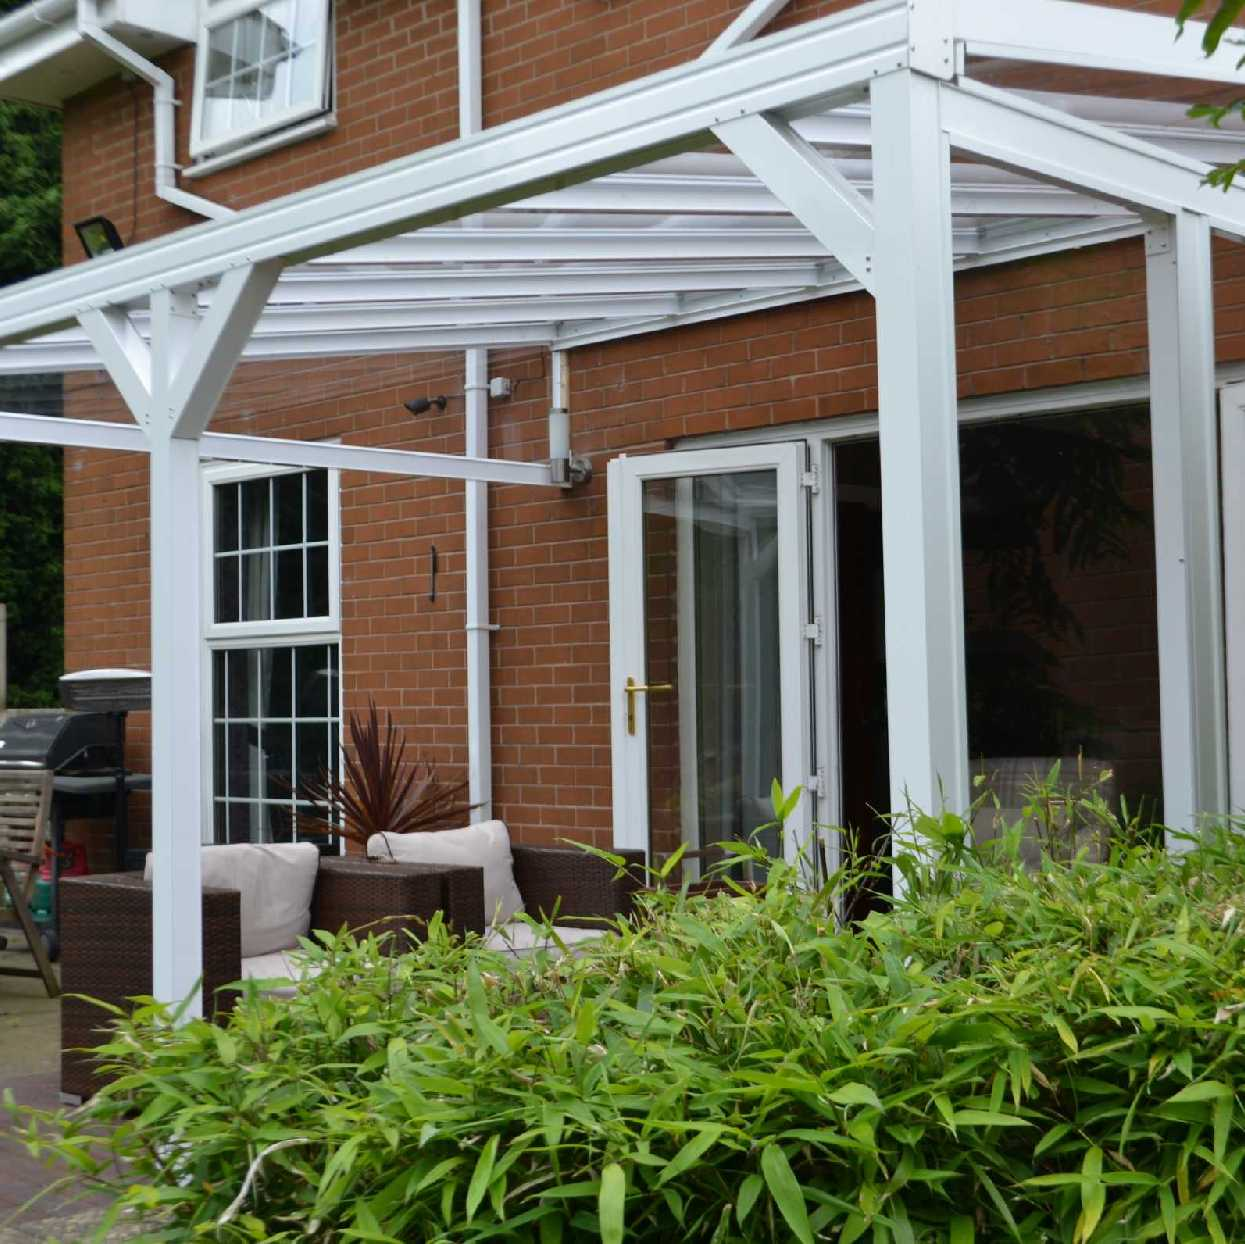 Omega Smart White Lean-To Canopy with 6mm Glass Clear Plate Polycarbonate Glazing - 4.9m (W) x 3.0m (P), (3) Supporting Posts from Omega Build